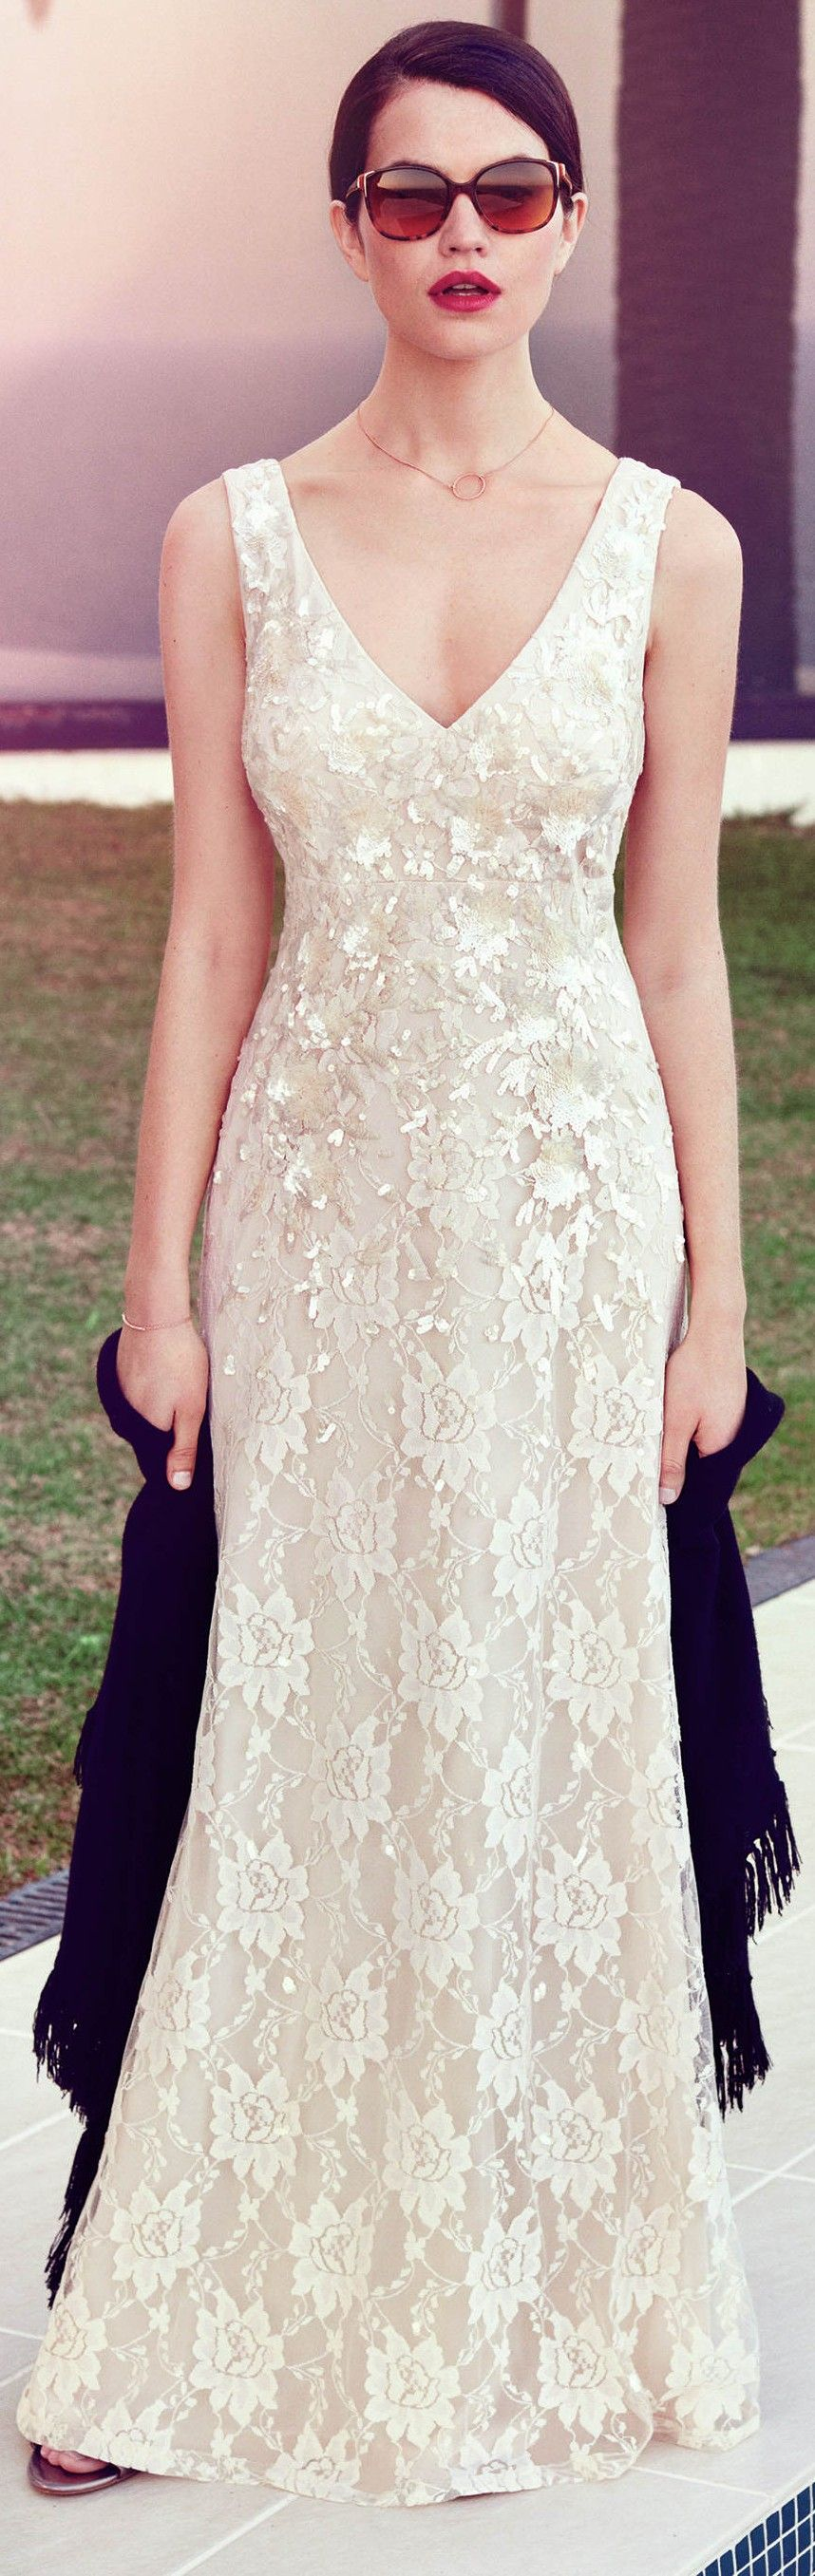 Casual wedding dresses for indie brides. Read article here: http ...